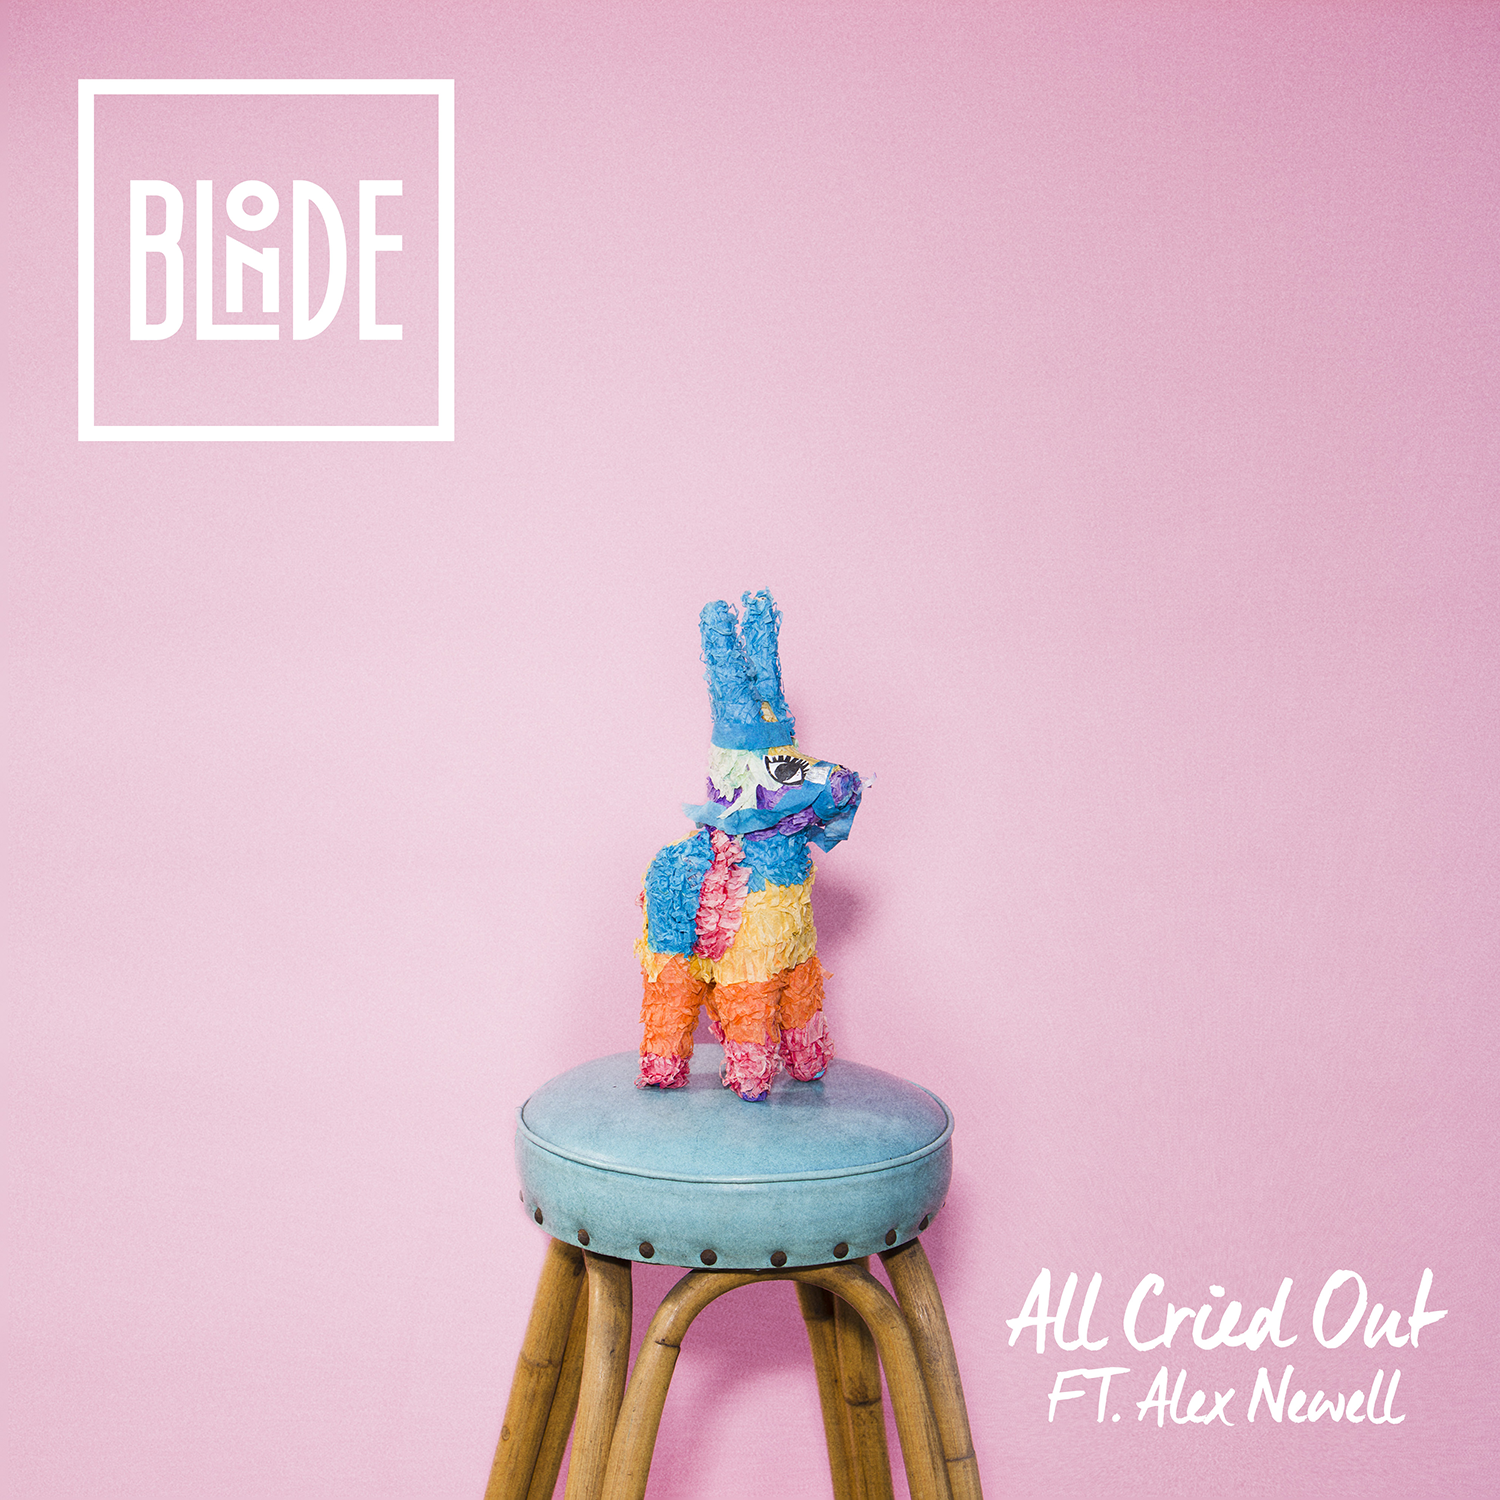 Blonde – All Cried Out ft Alex Newell